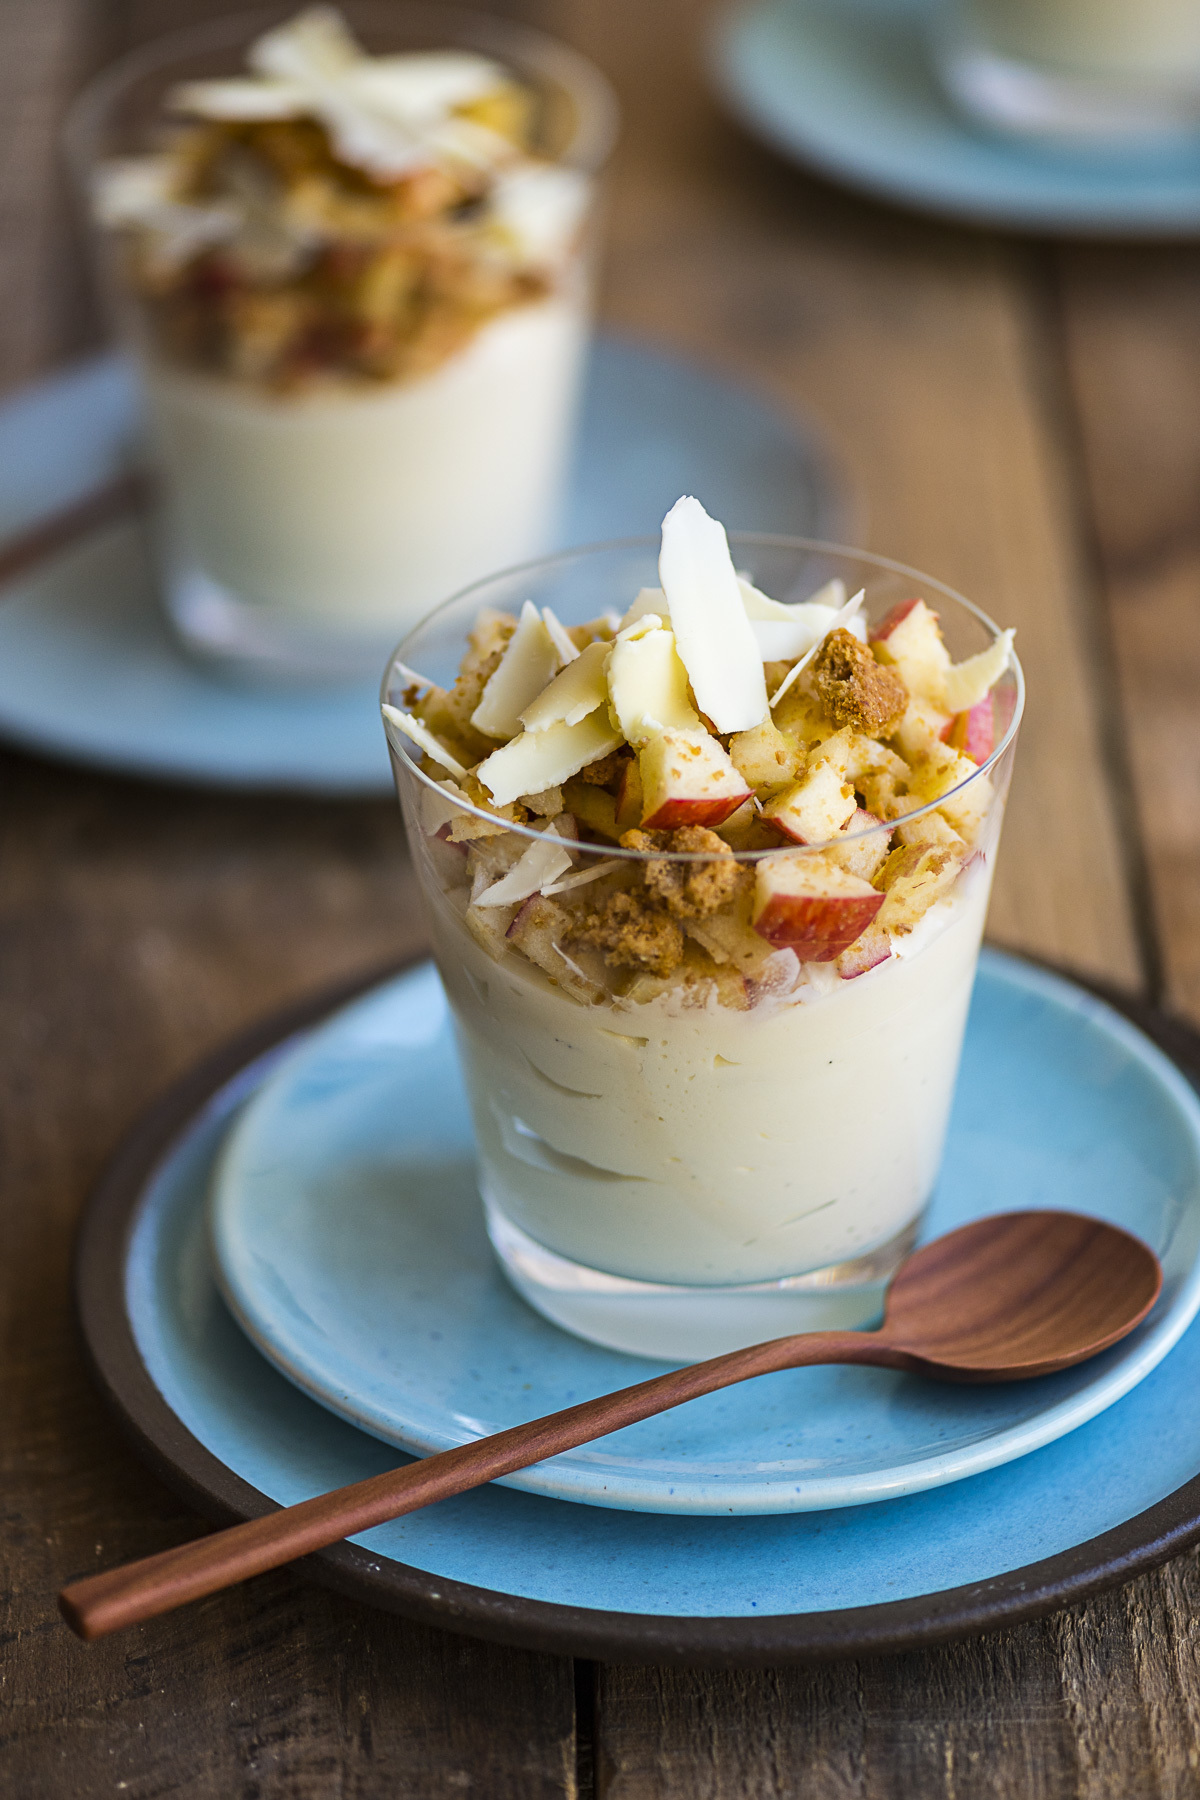 heinstirred wrote a new post, White Chocolate and Mascarpone Mousse with a Raw Jazz™Apple Crumble, on the site heinstirred